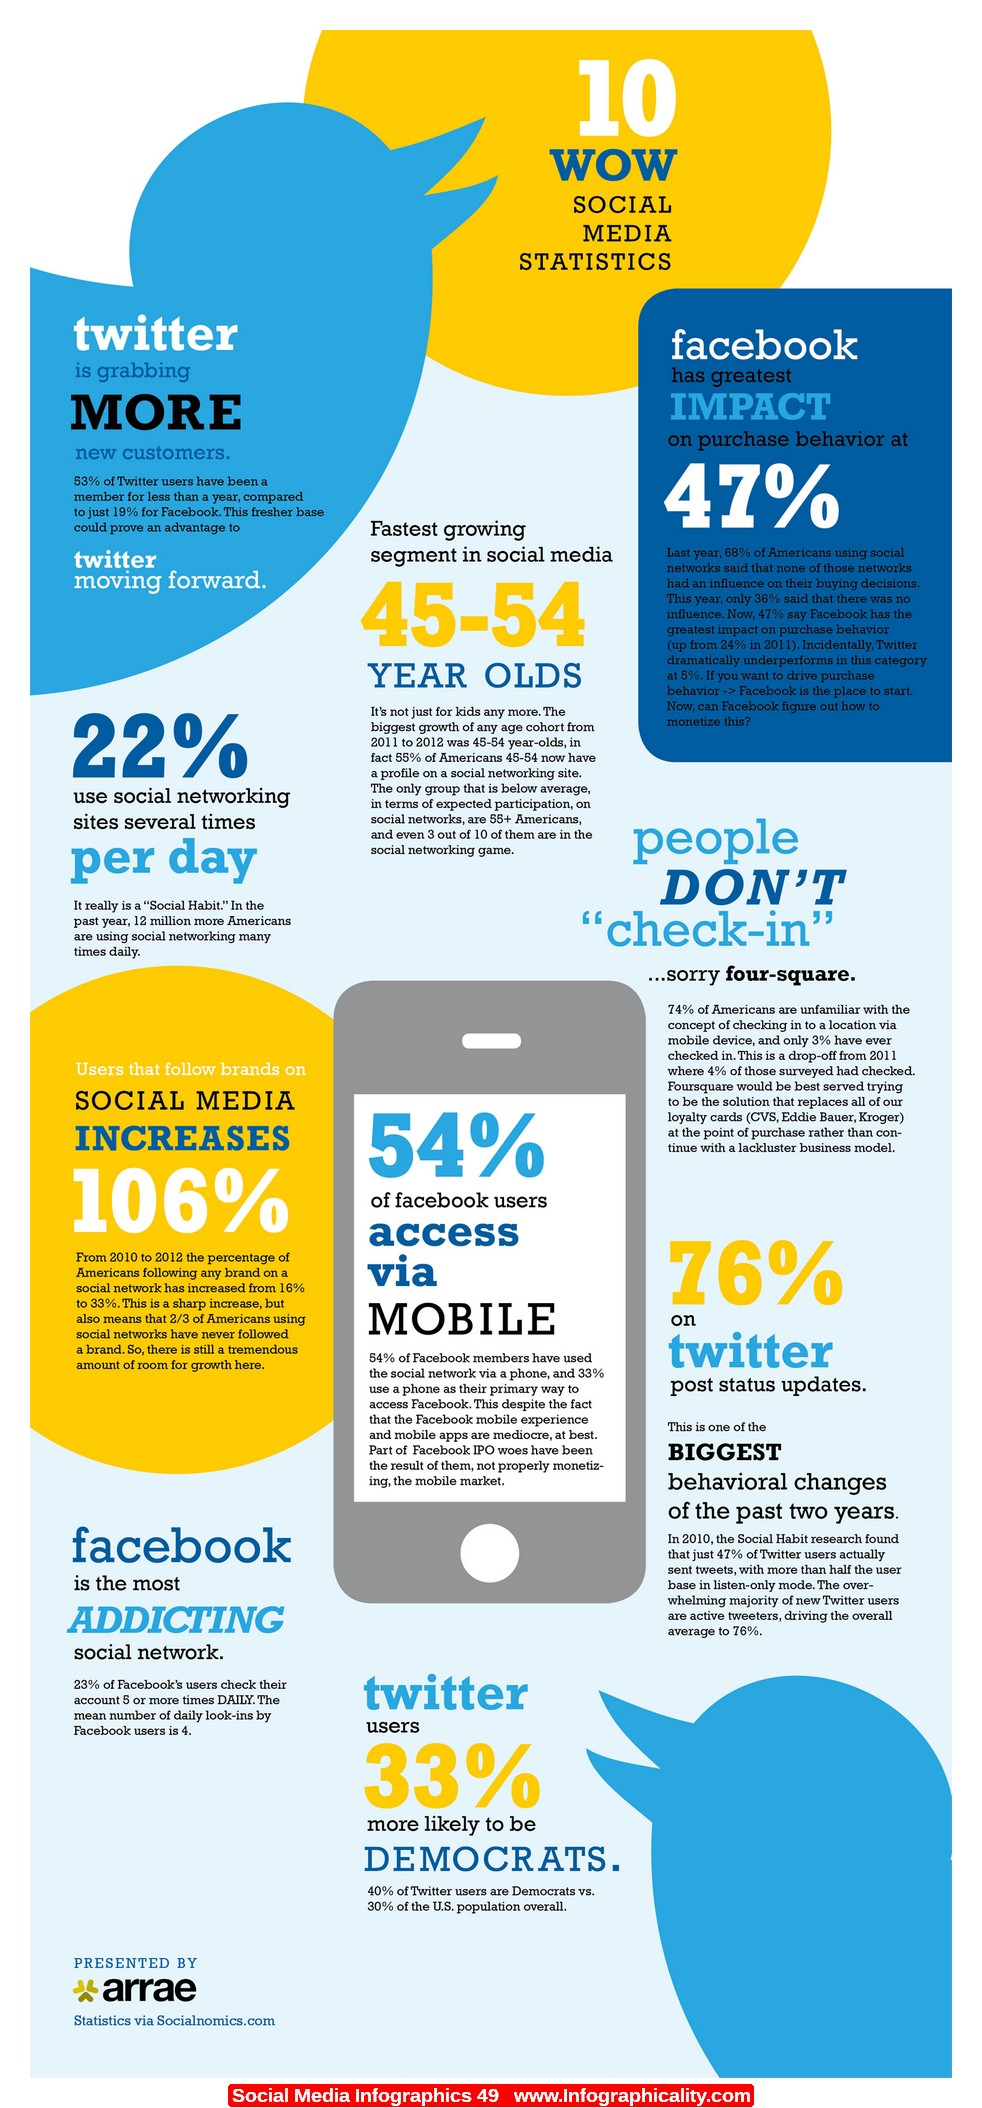 Don't Get Left Behind the Social Media Trends! - OPUSfidelis